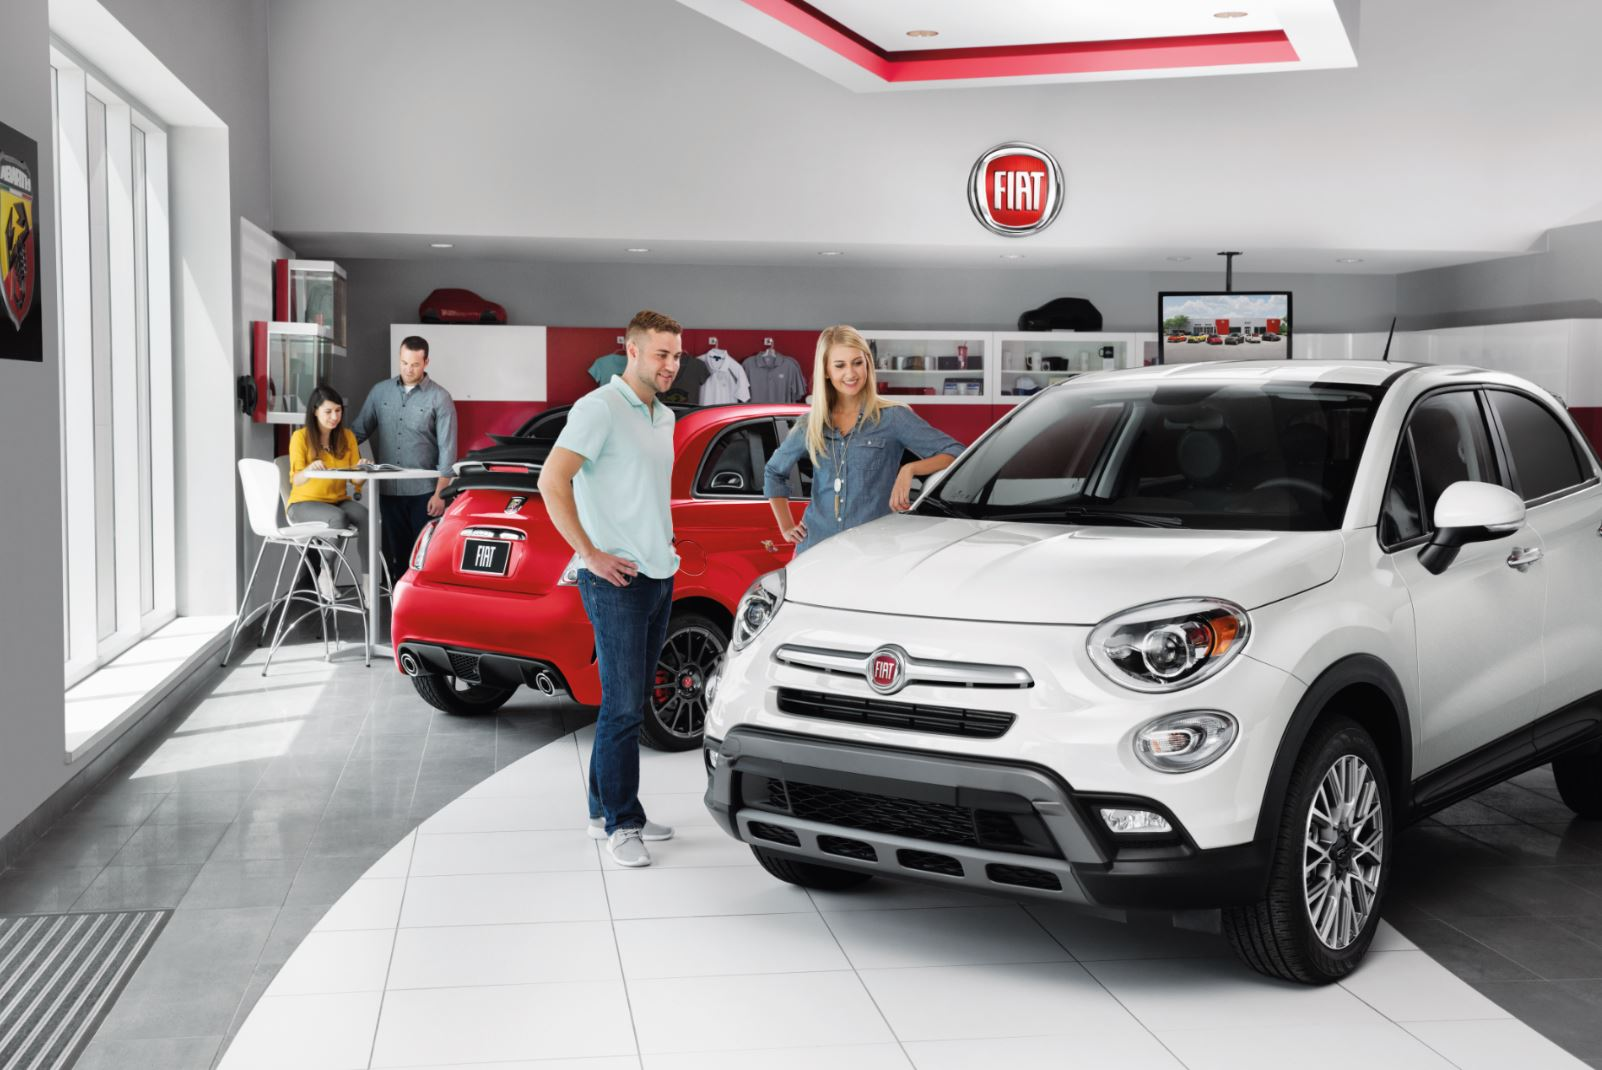 Used Car Dealership In Youngstown OH Bob Chuck Eddy FIAT - Where is the nearest fiat dealership